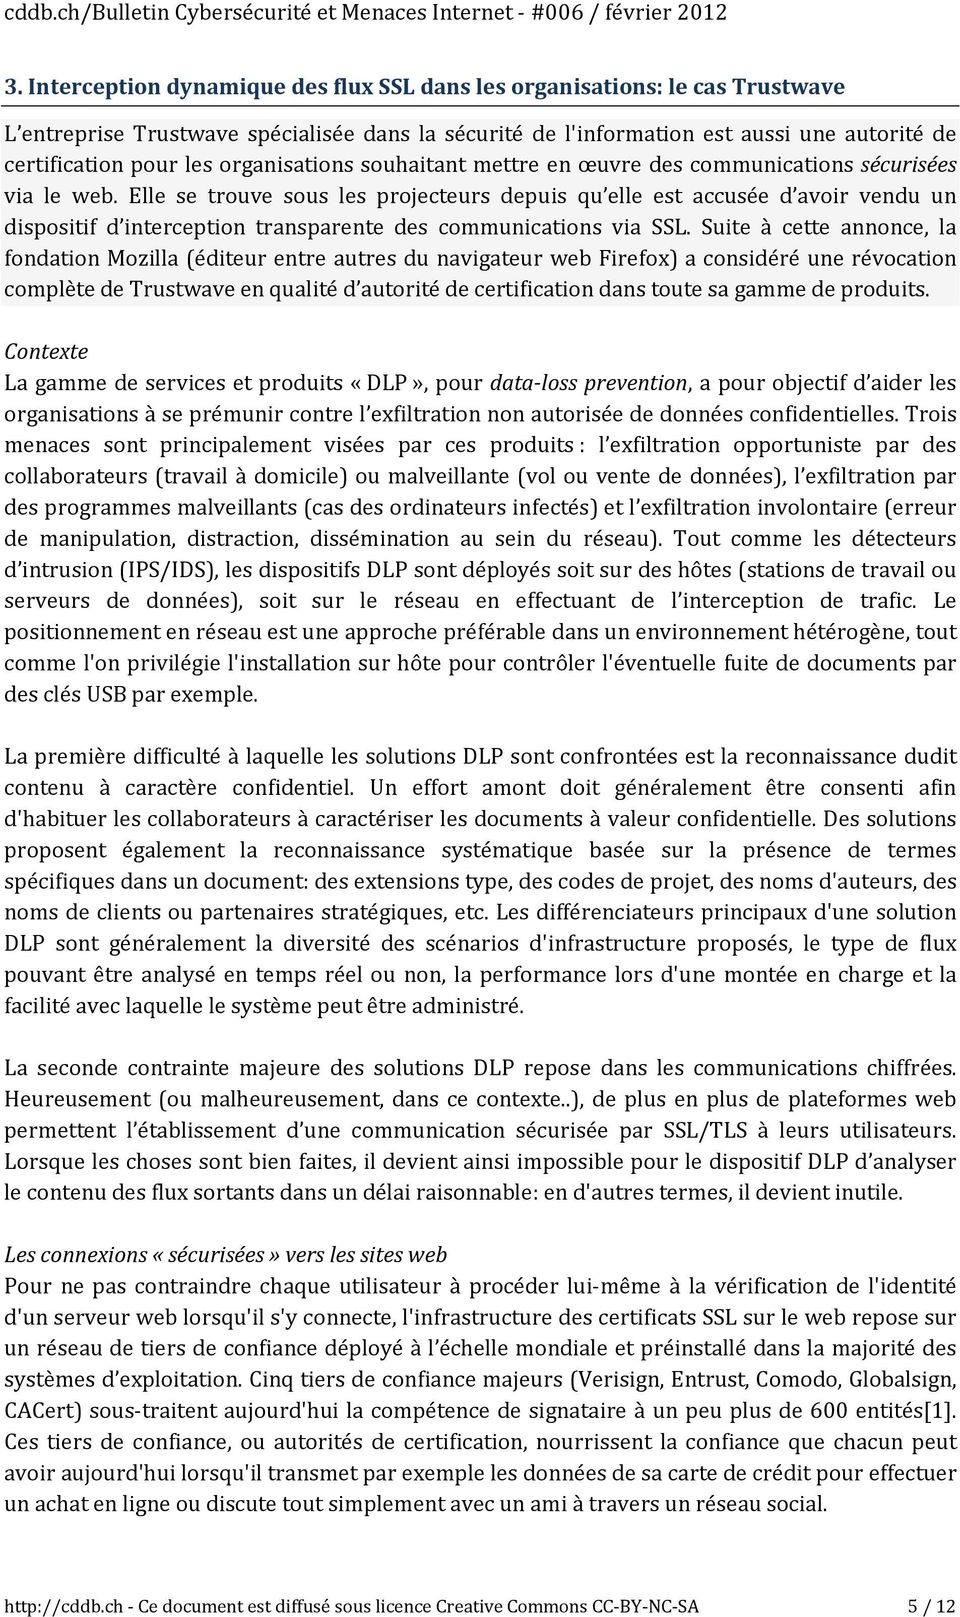 Elle se trouve sous les projecteurs depuis qu elle est accusée d avoir vendu un dispositif d interception transparente des communications via SSL.